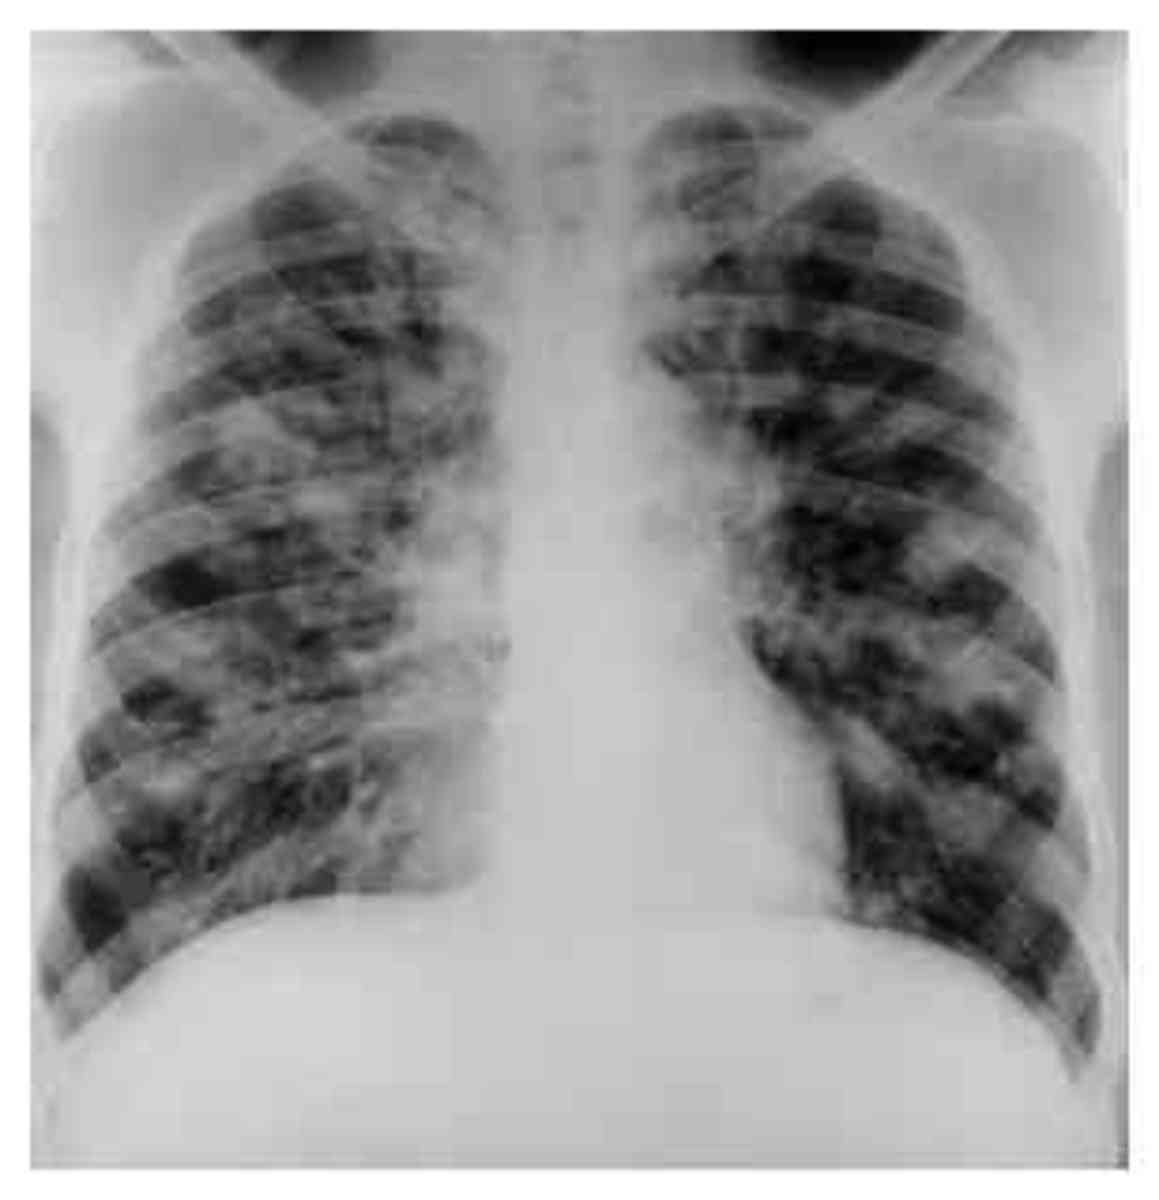 Pneumonia caused by Legionella may occur with abdominal pain, diarrhea, or confusion, while pneumonia caused by Streptococcus pneumoniae is associated with rusty colored sputum,